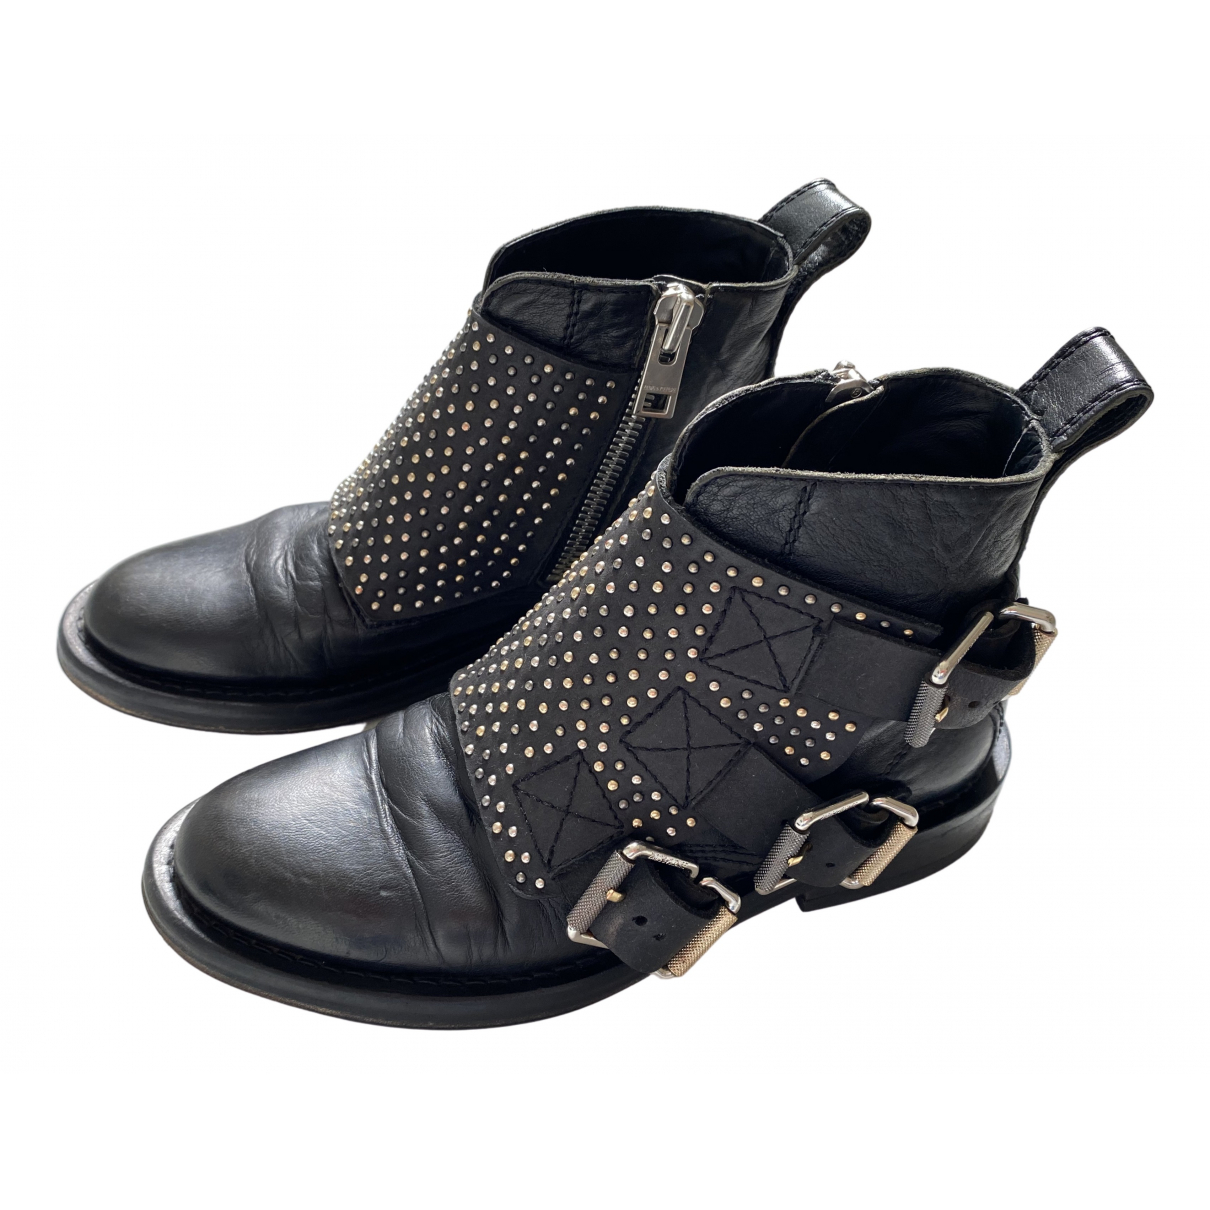 Zadig & Voltaire \N Black Leather Boots for Women 37 EU